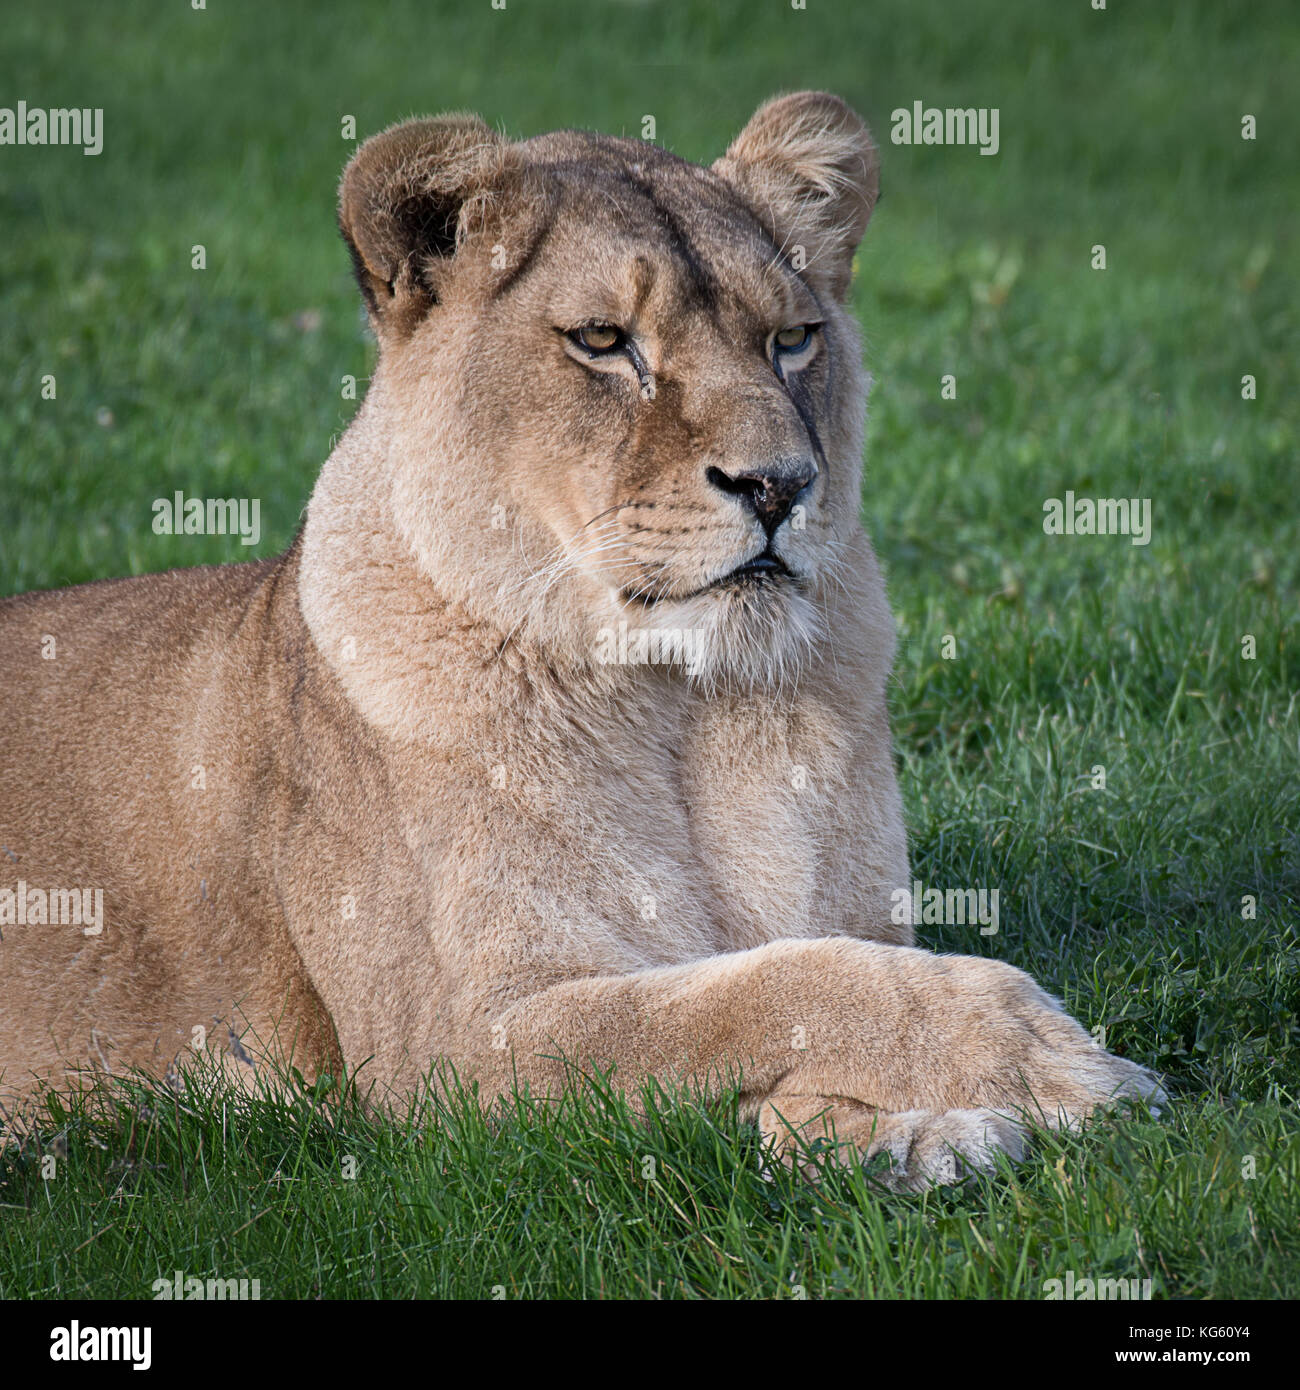 A close head portrait in square format of a lioness lying down on grass looking alert to the right - Stock Image